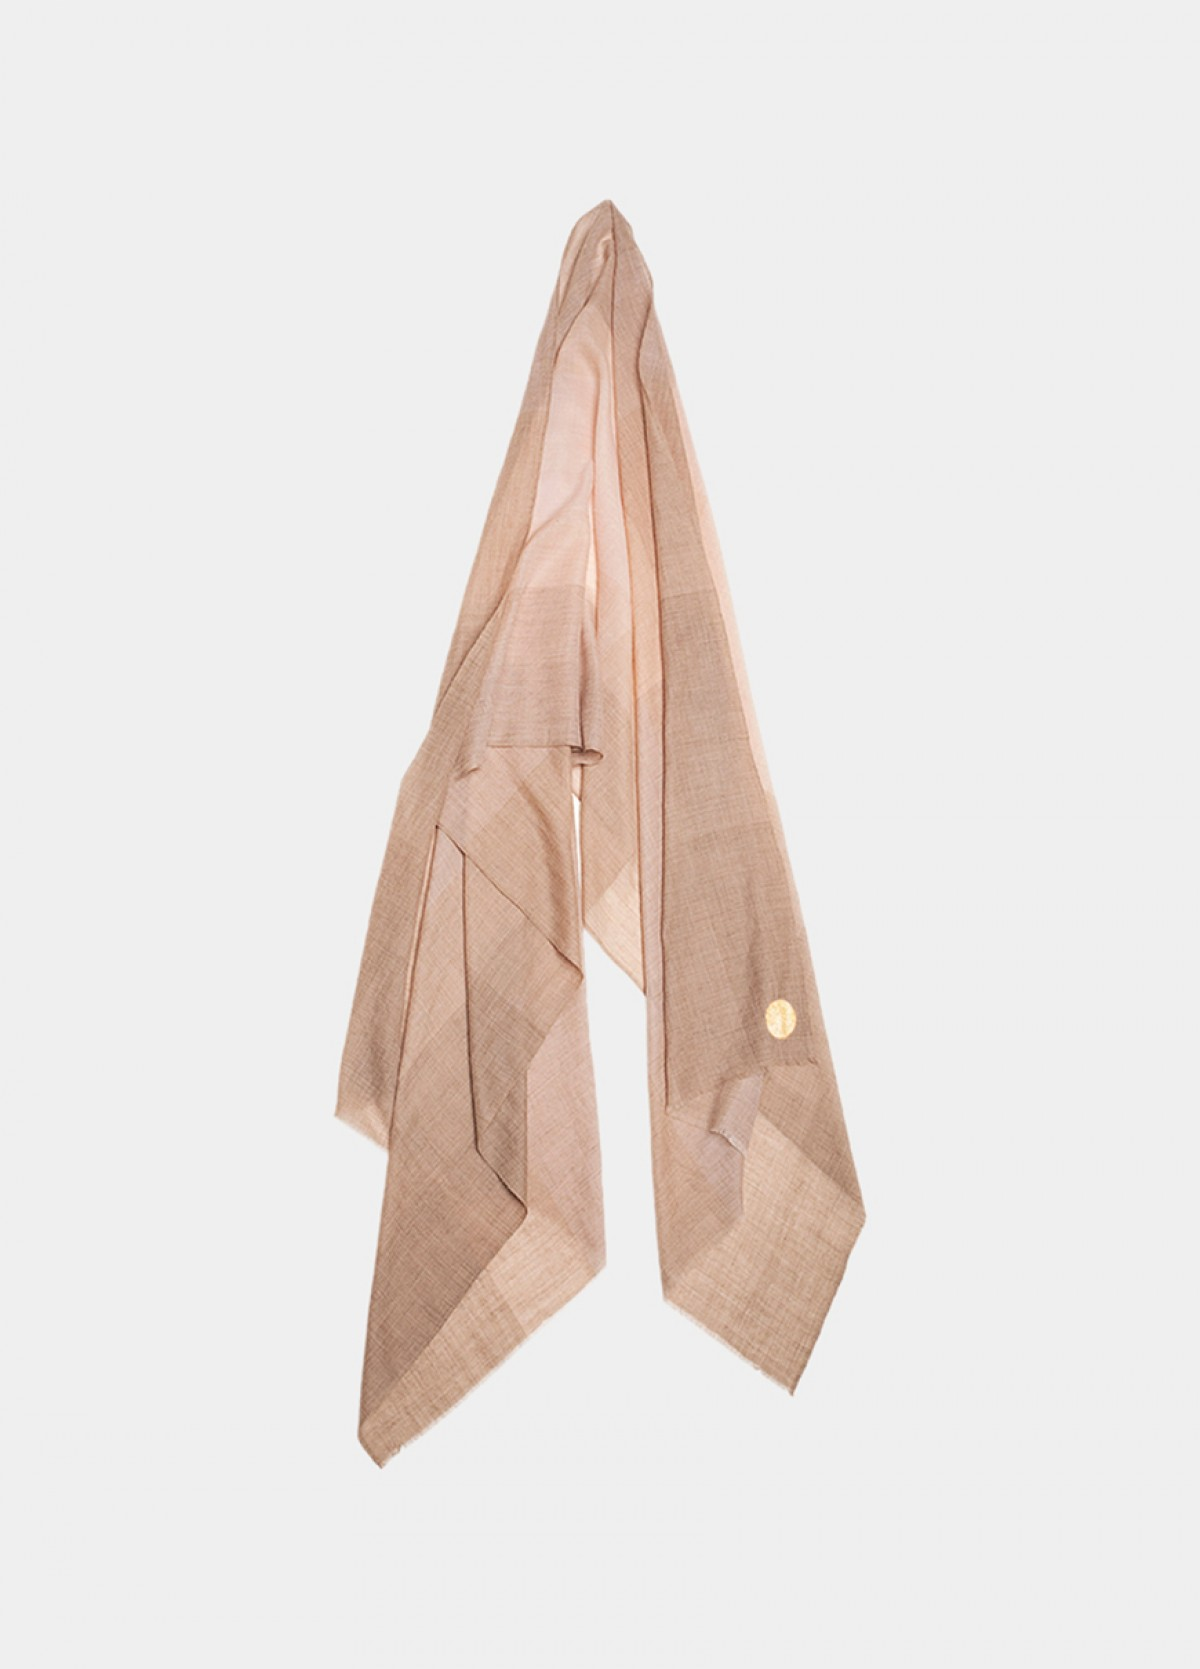 The Olive Green Cashmere Stole